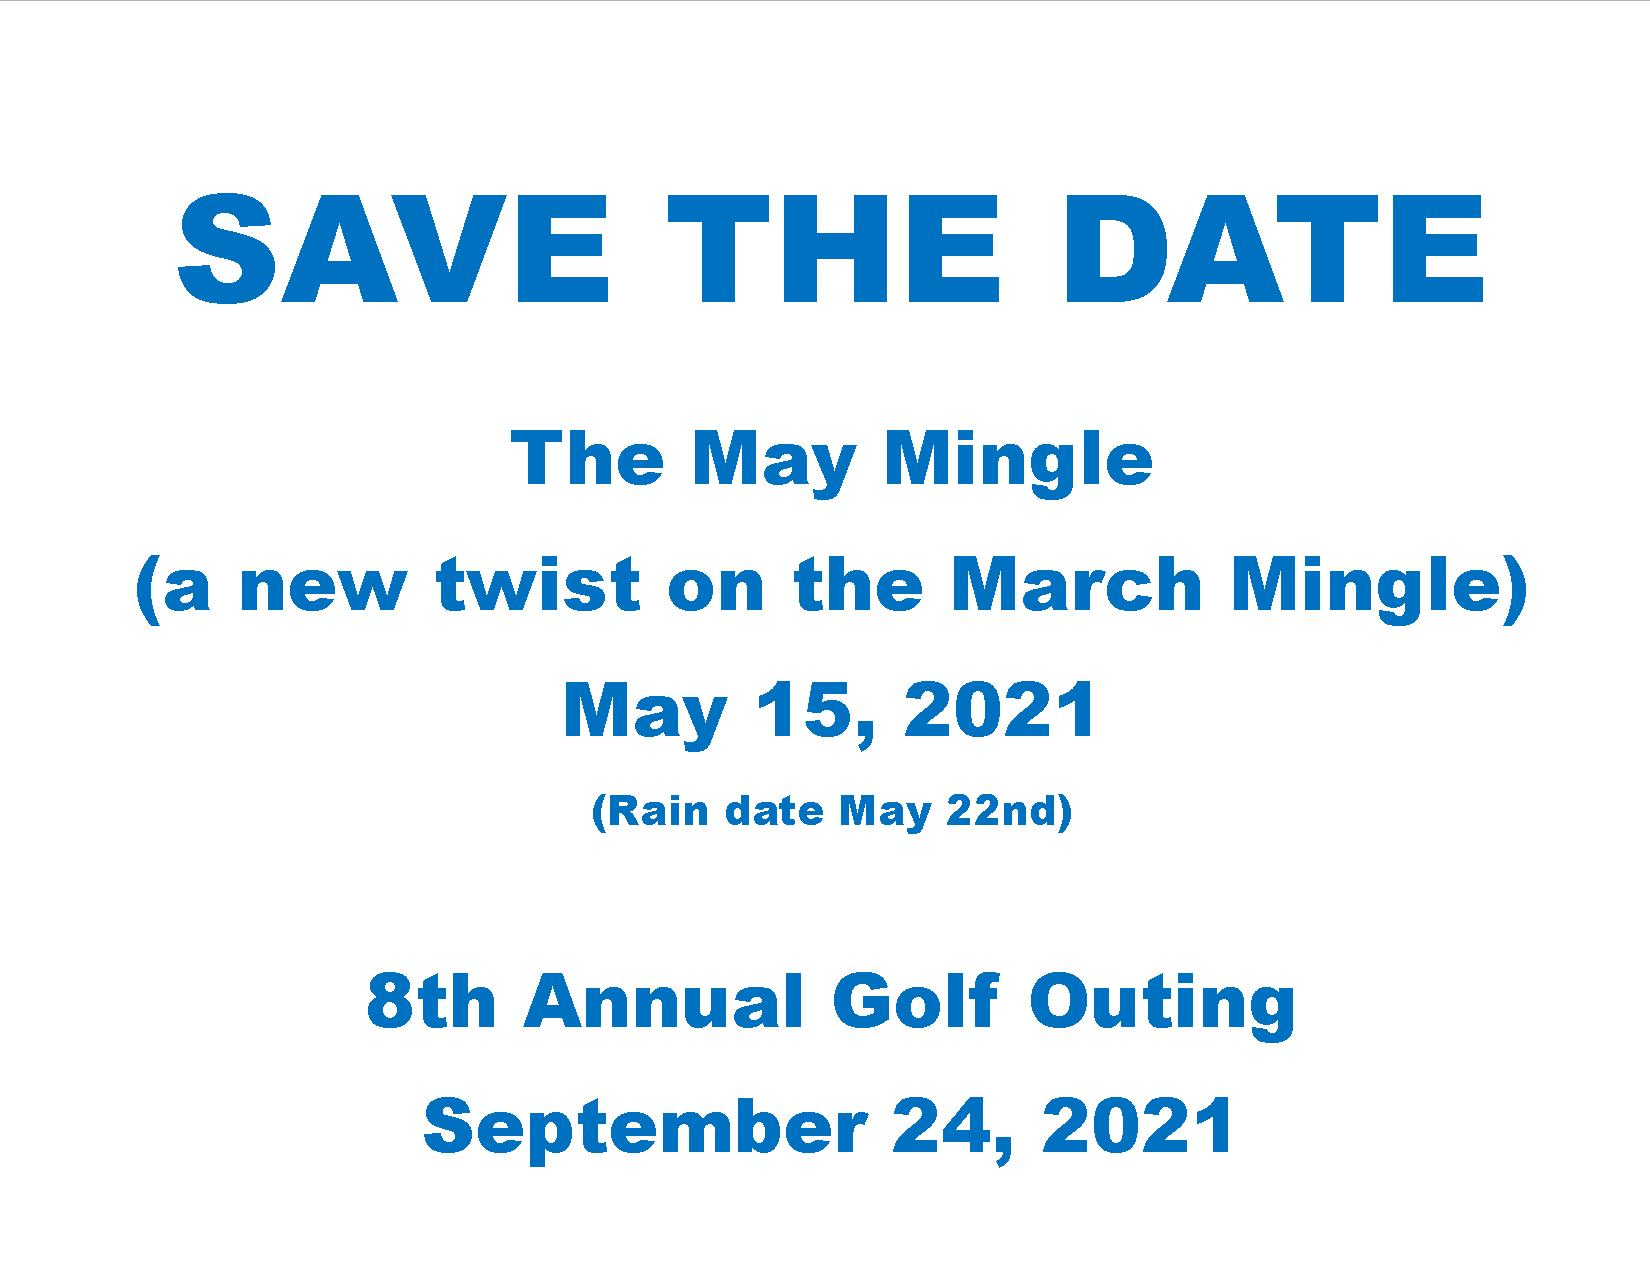 Save the date image for website 2021 May Mingle and Golf Outing